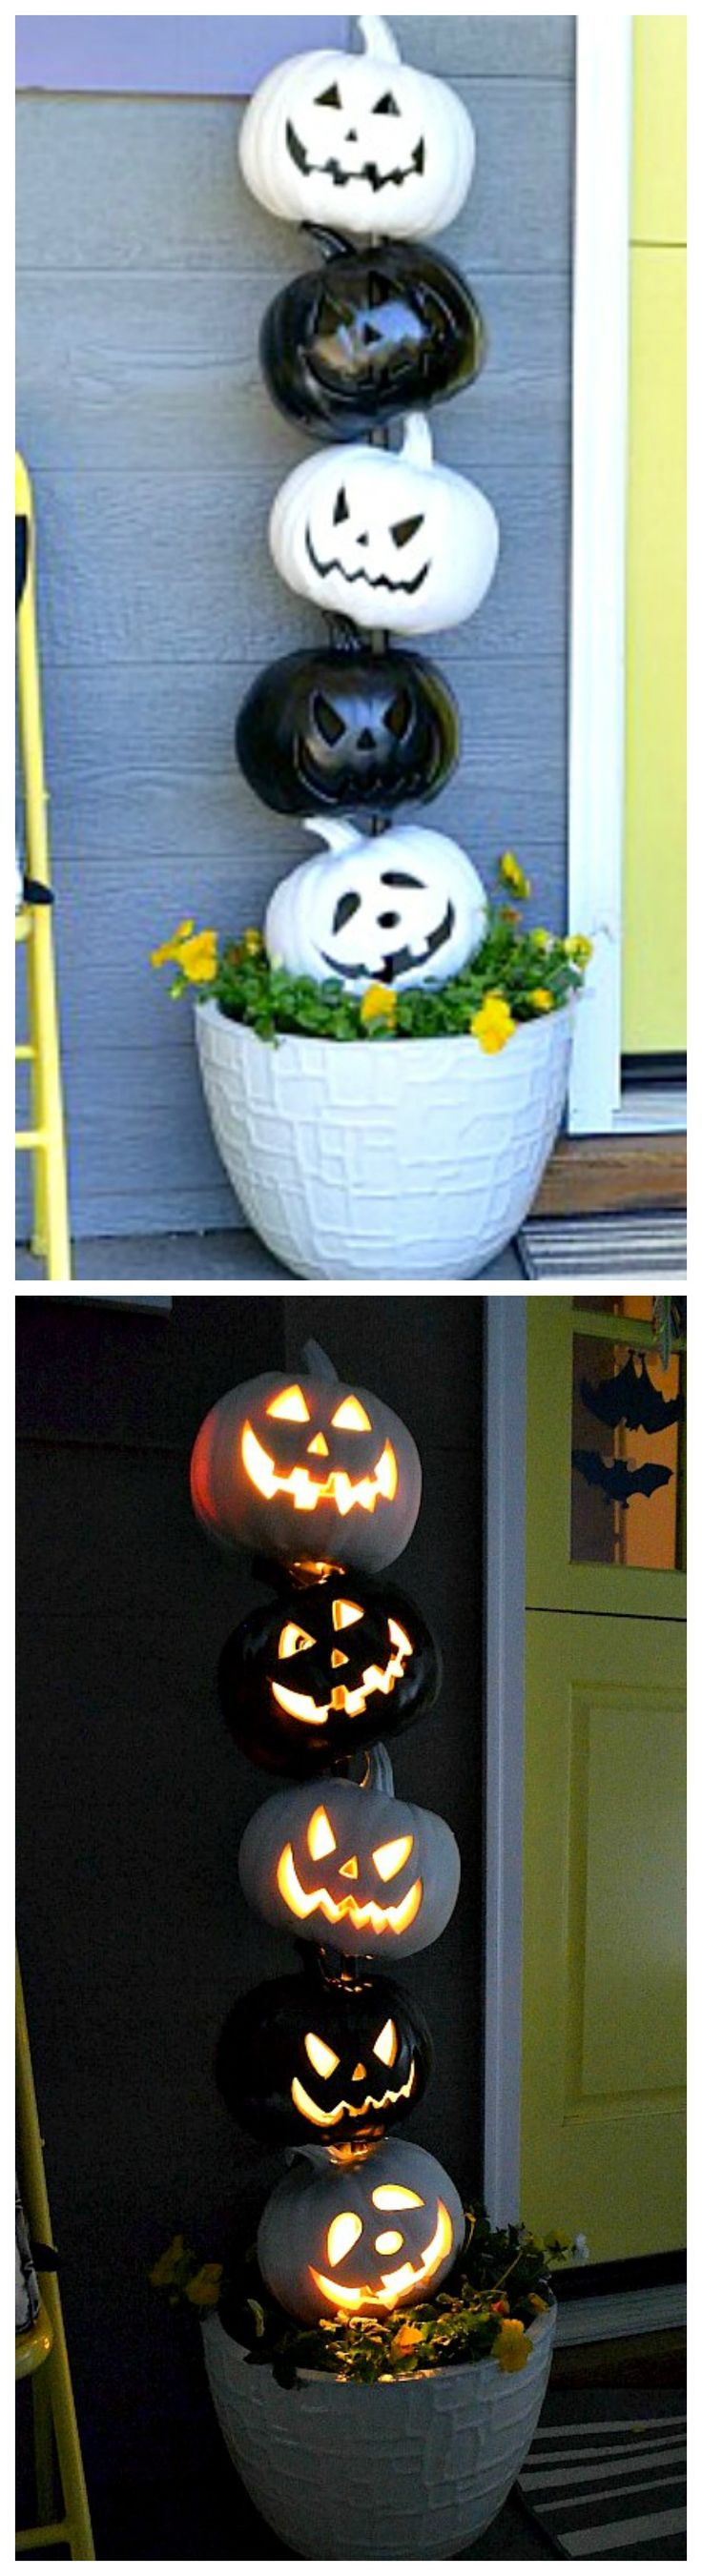 DIY Easy Black and White Jack-o-Lantern Topiary